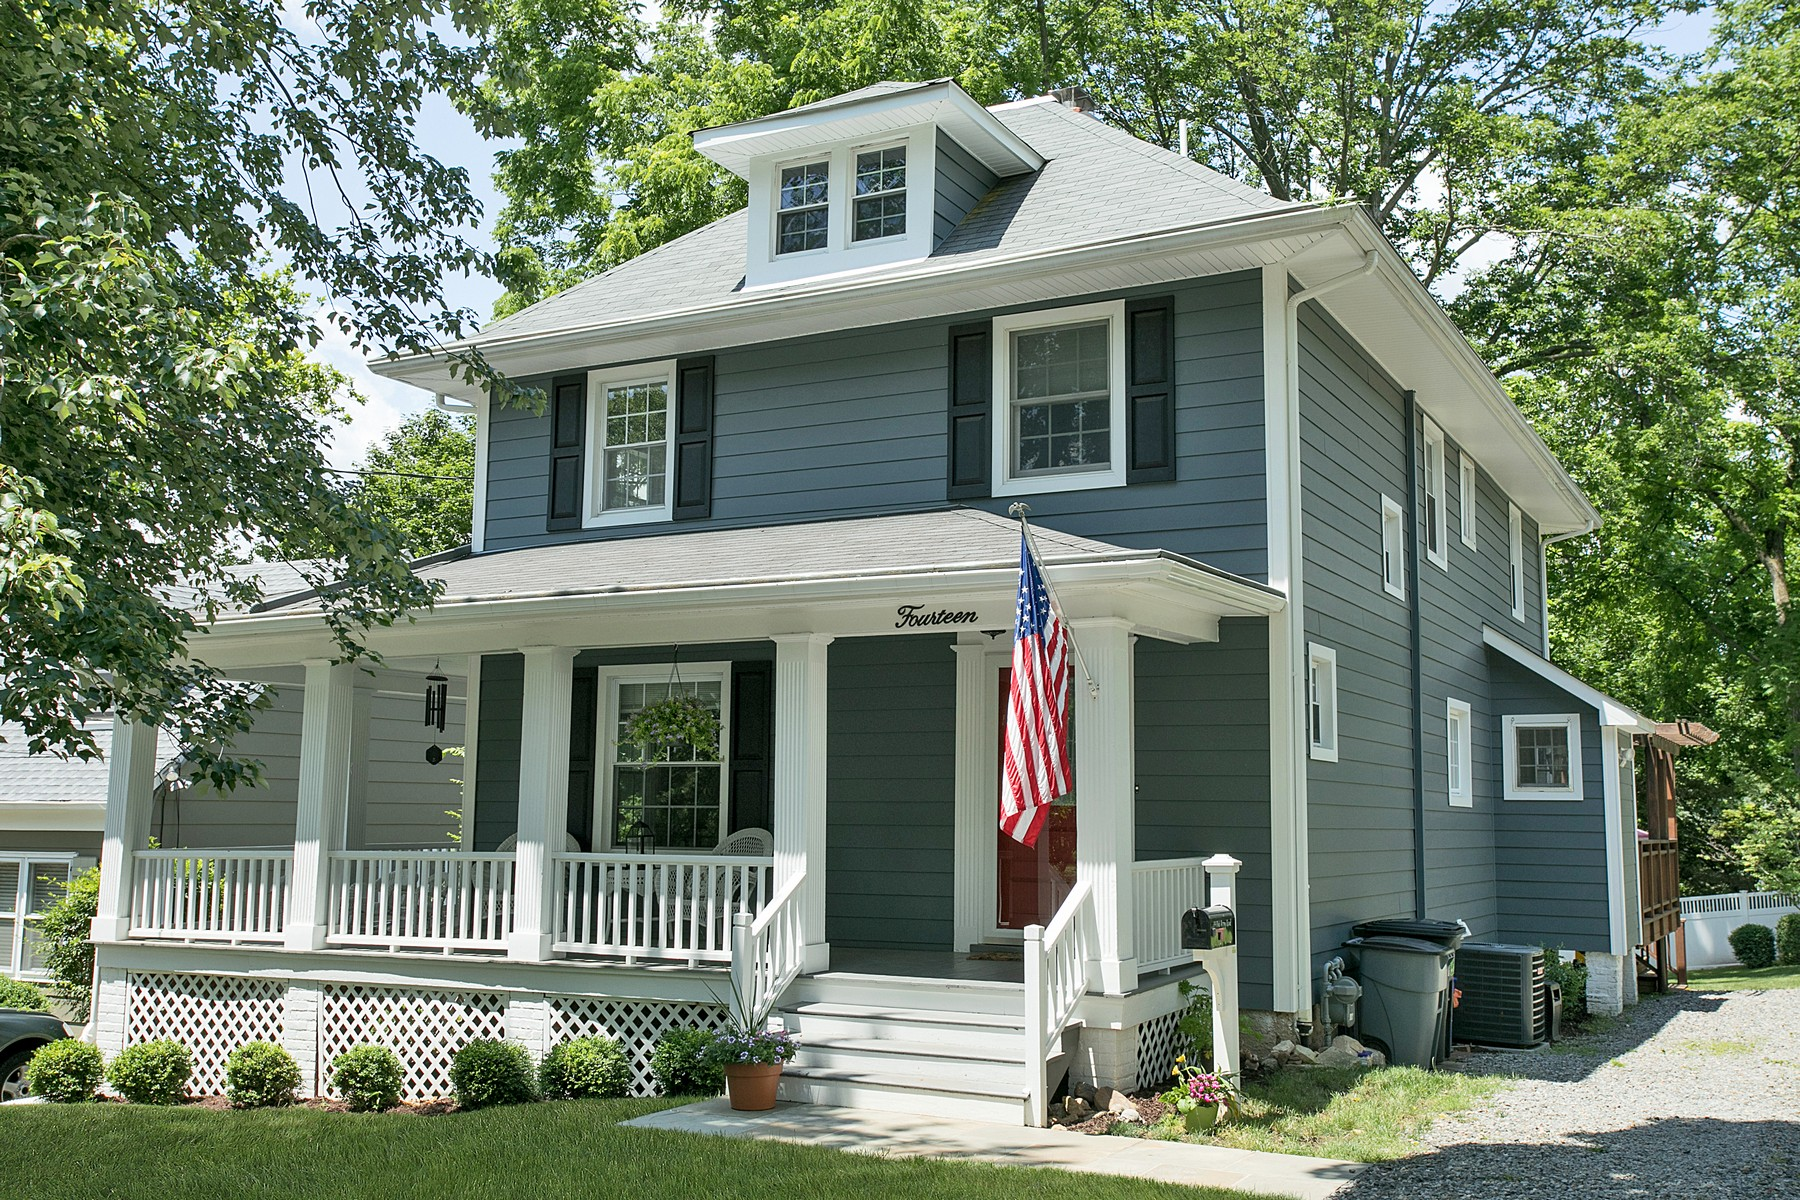 Single Family Home for Sale at Charming Colonial 14 Old Army Road Bernardsville, New Jersey, 07924 United States